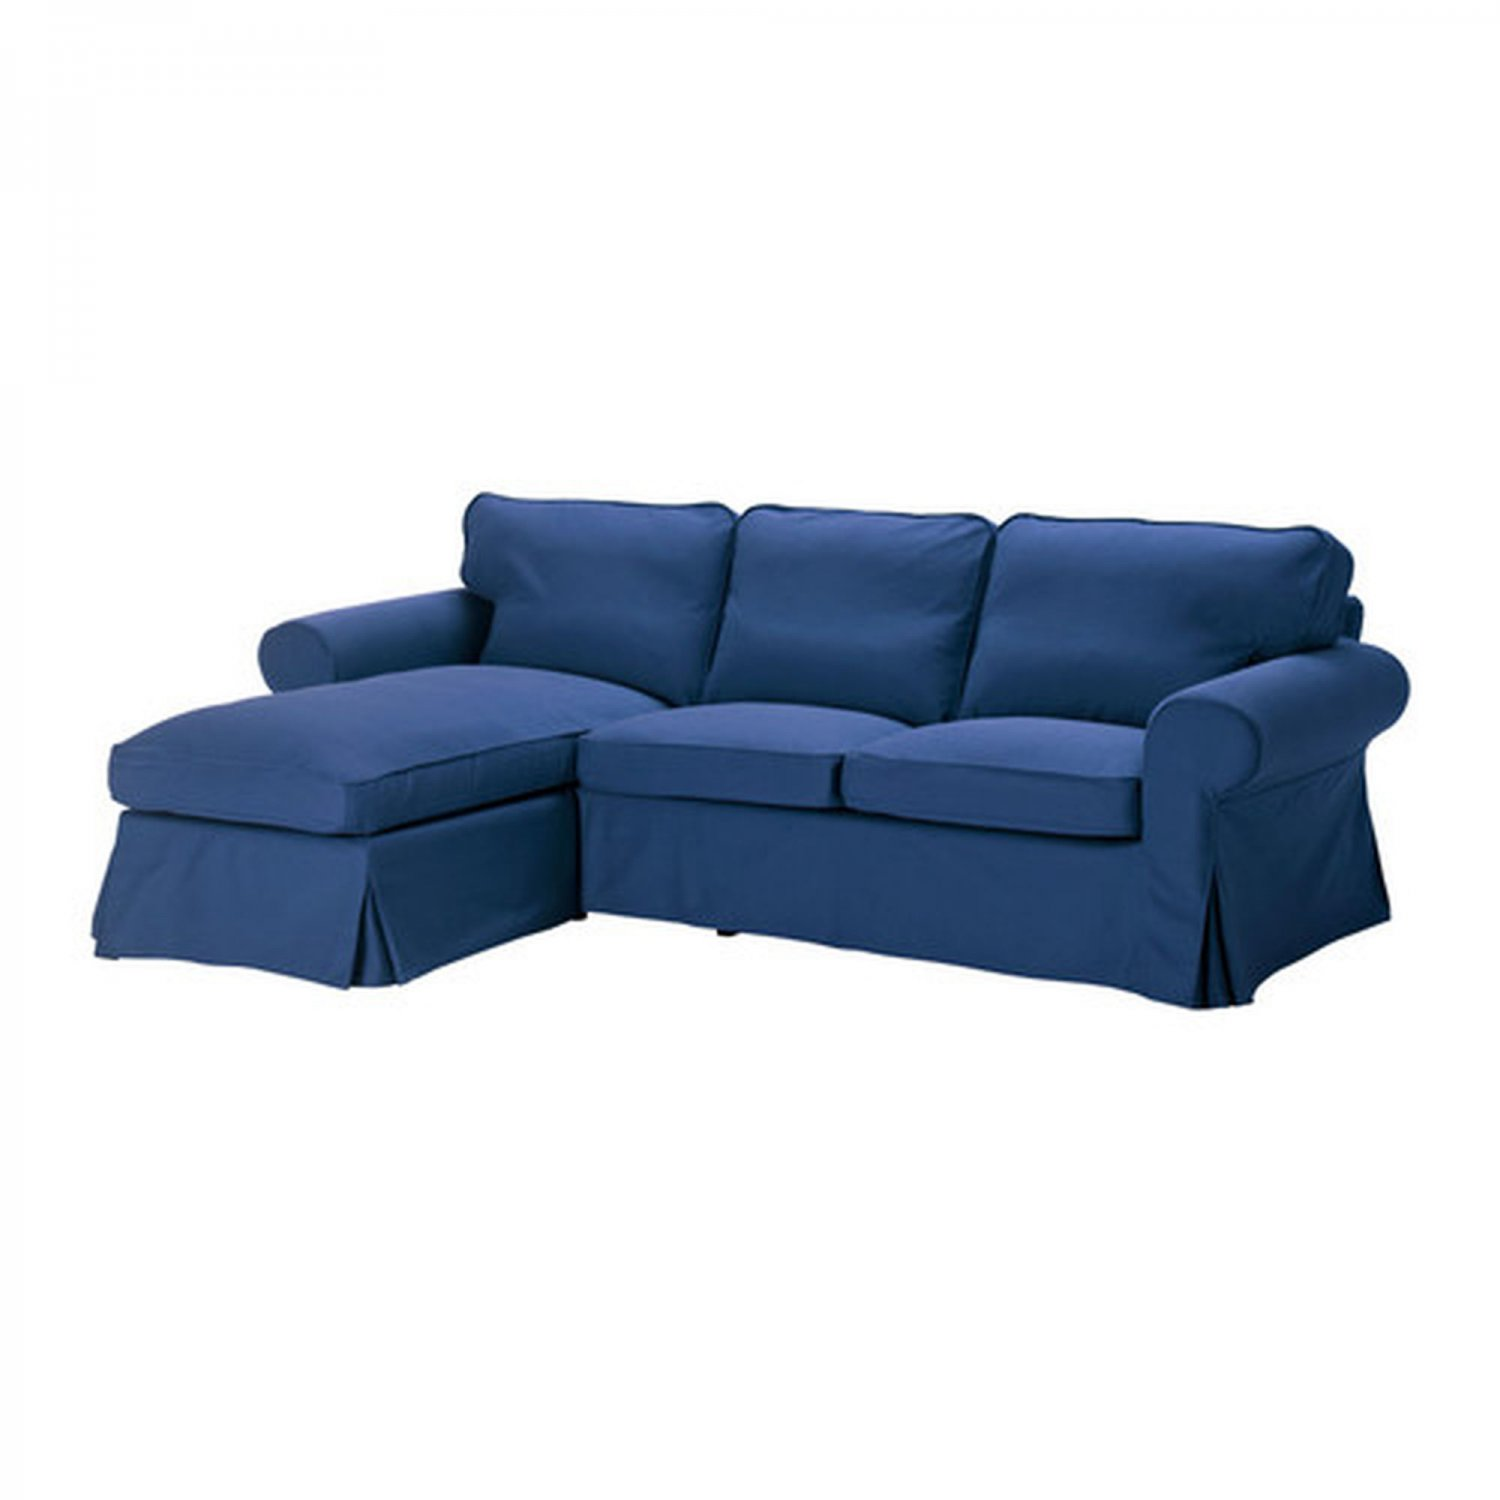 Ikea ektorp loveseat with chaise lounge cover slipcover for Sofa chaise longue